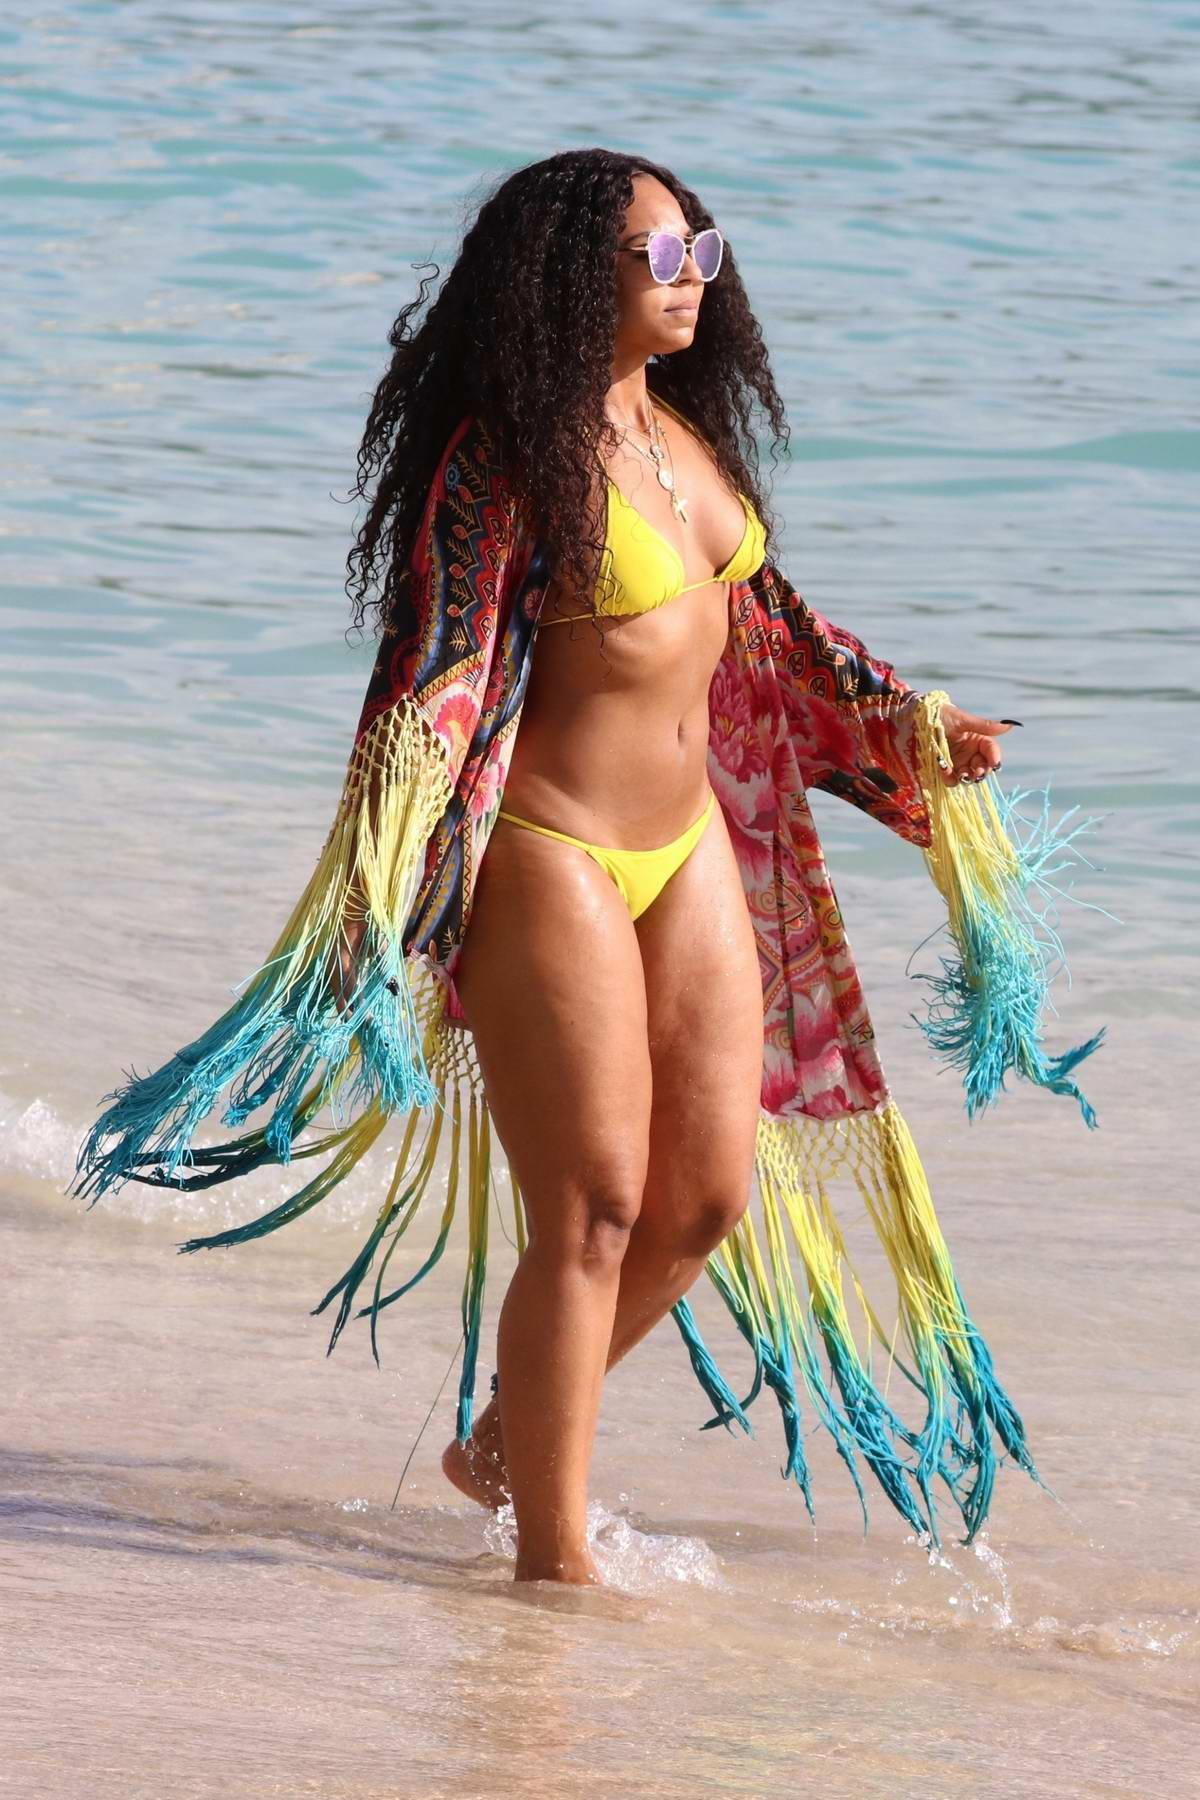 Ashanti in a yellow bikini enjoying a beautiful sunny day on a beach in Hawaii